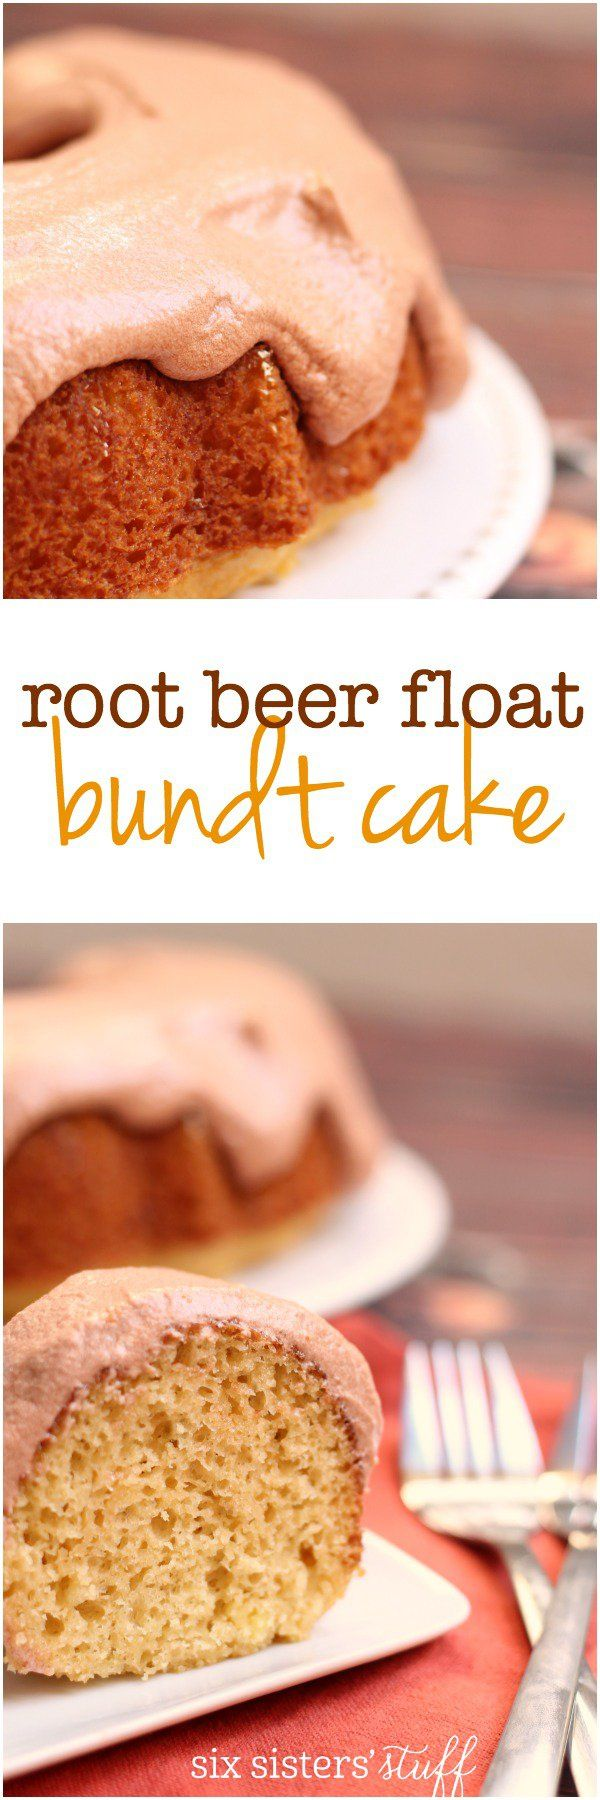 Root beer flavored cake recipe